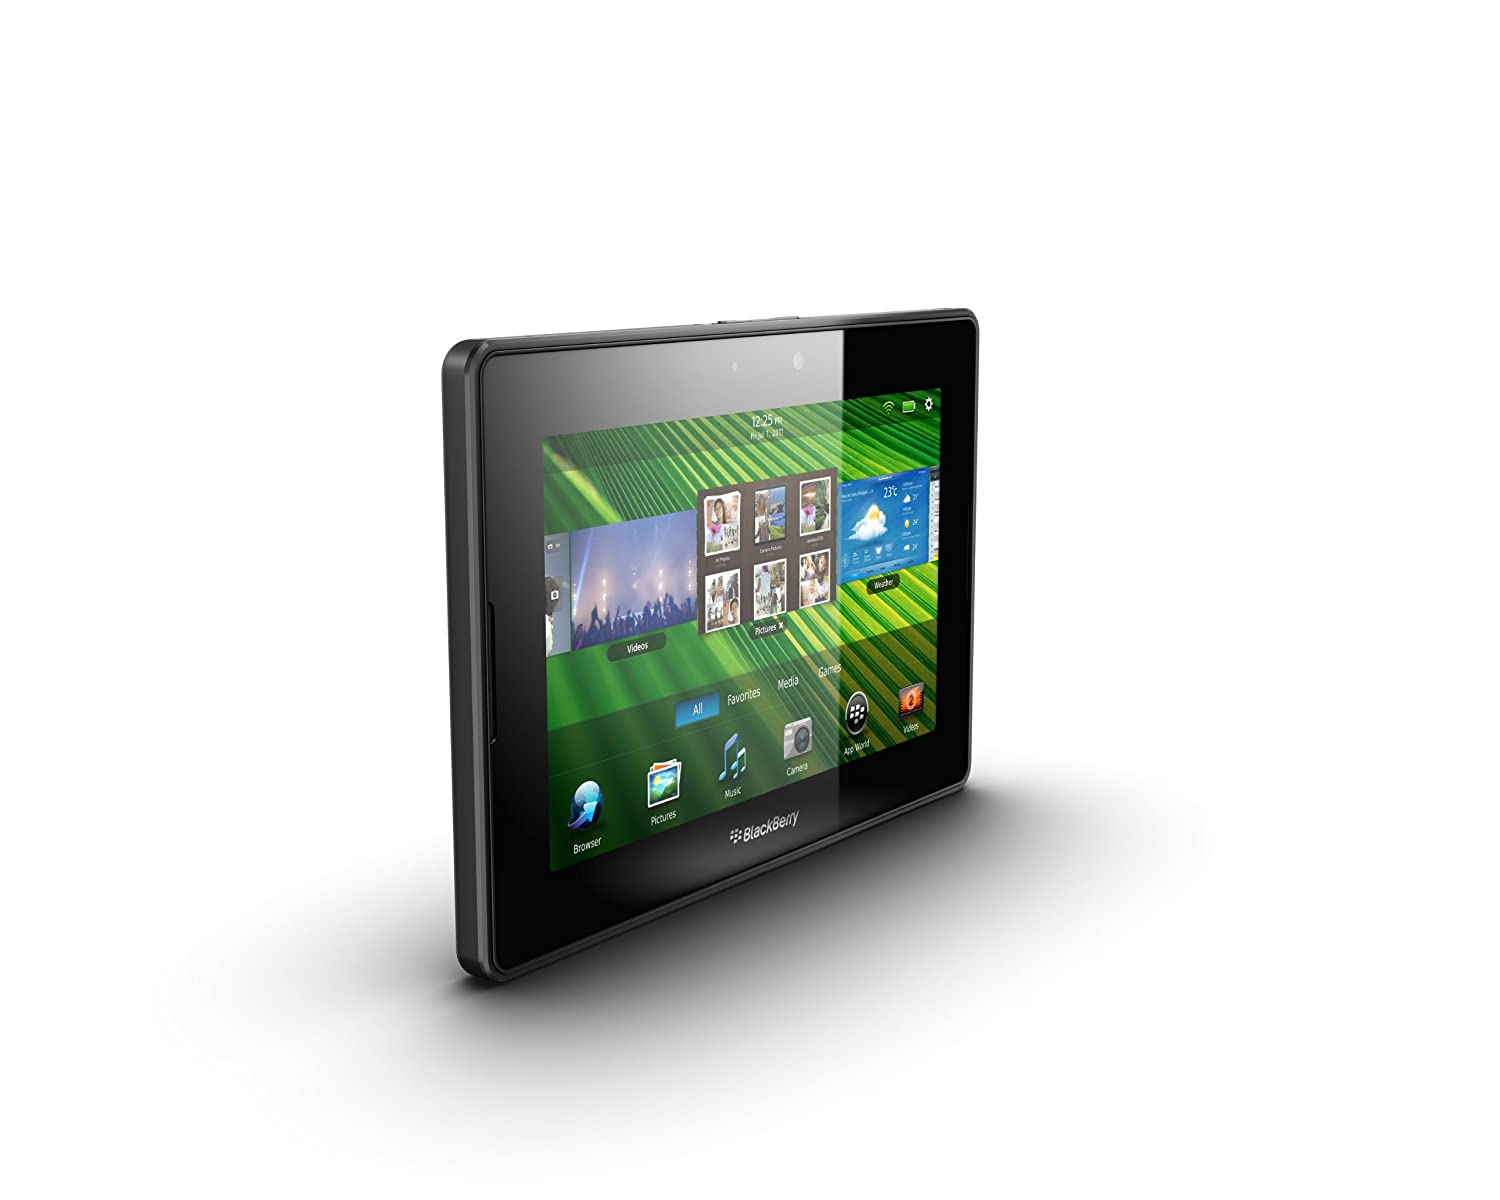 Blackberry playbook 7 tablet 64gb review uk dating